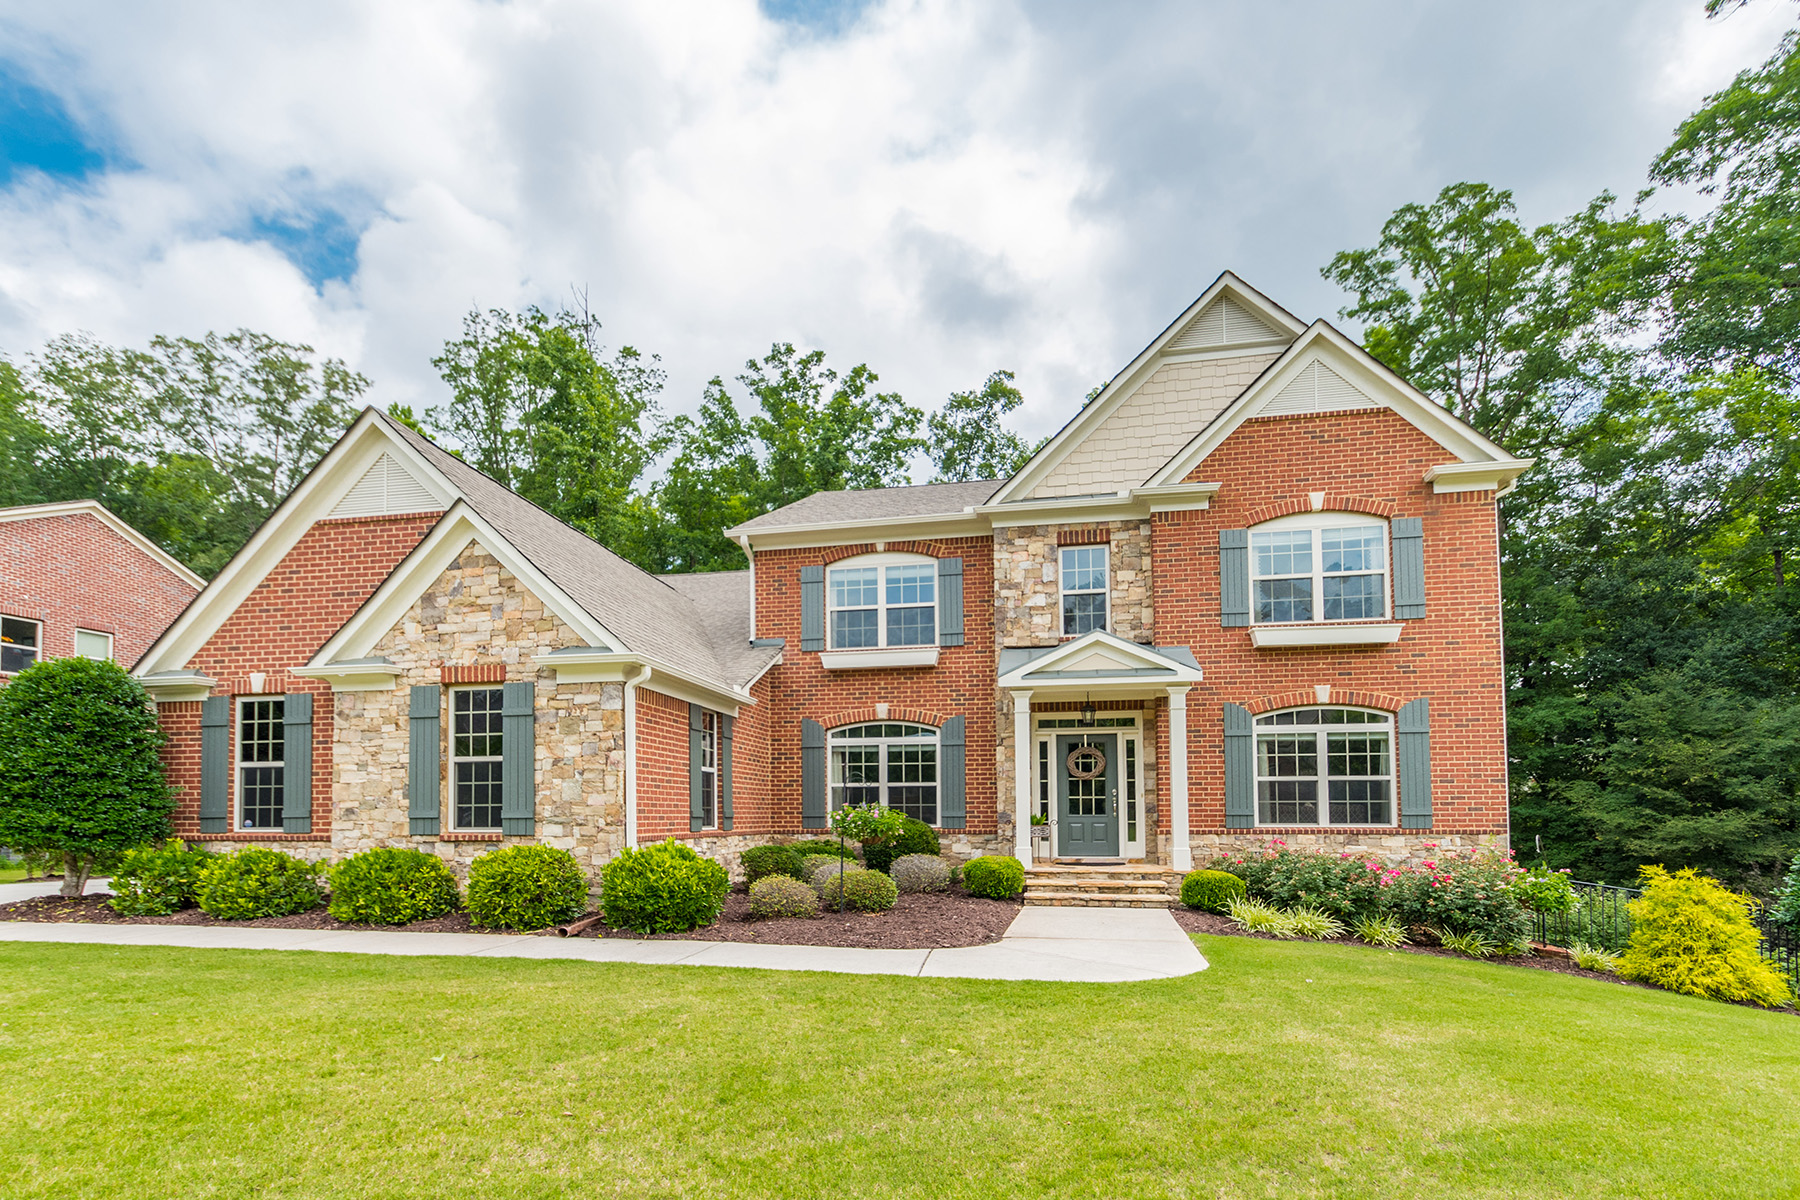 Single Family Home for Sale at Elegant Estate in Harrison HS with Full In-Law Suite 357 Julia Drive Powder Springs, Georgia 30127 United States